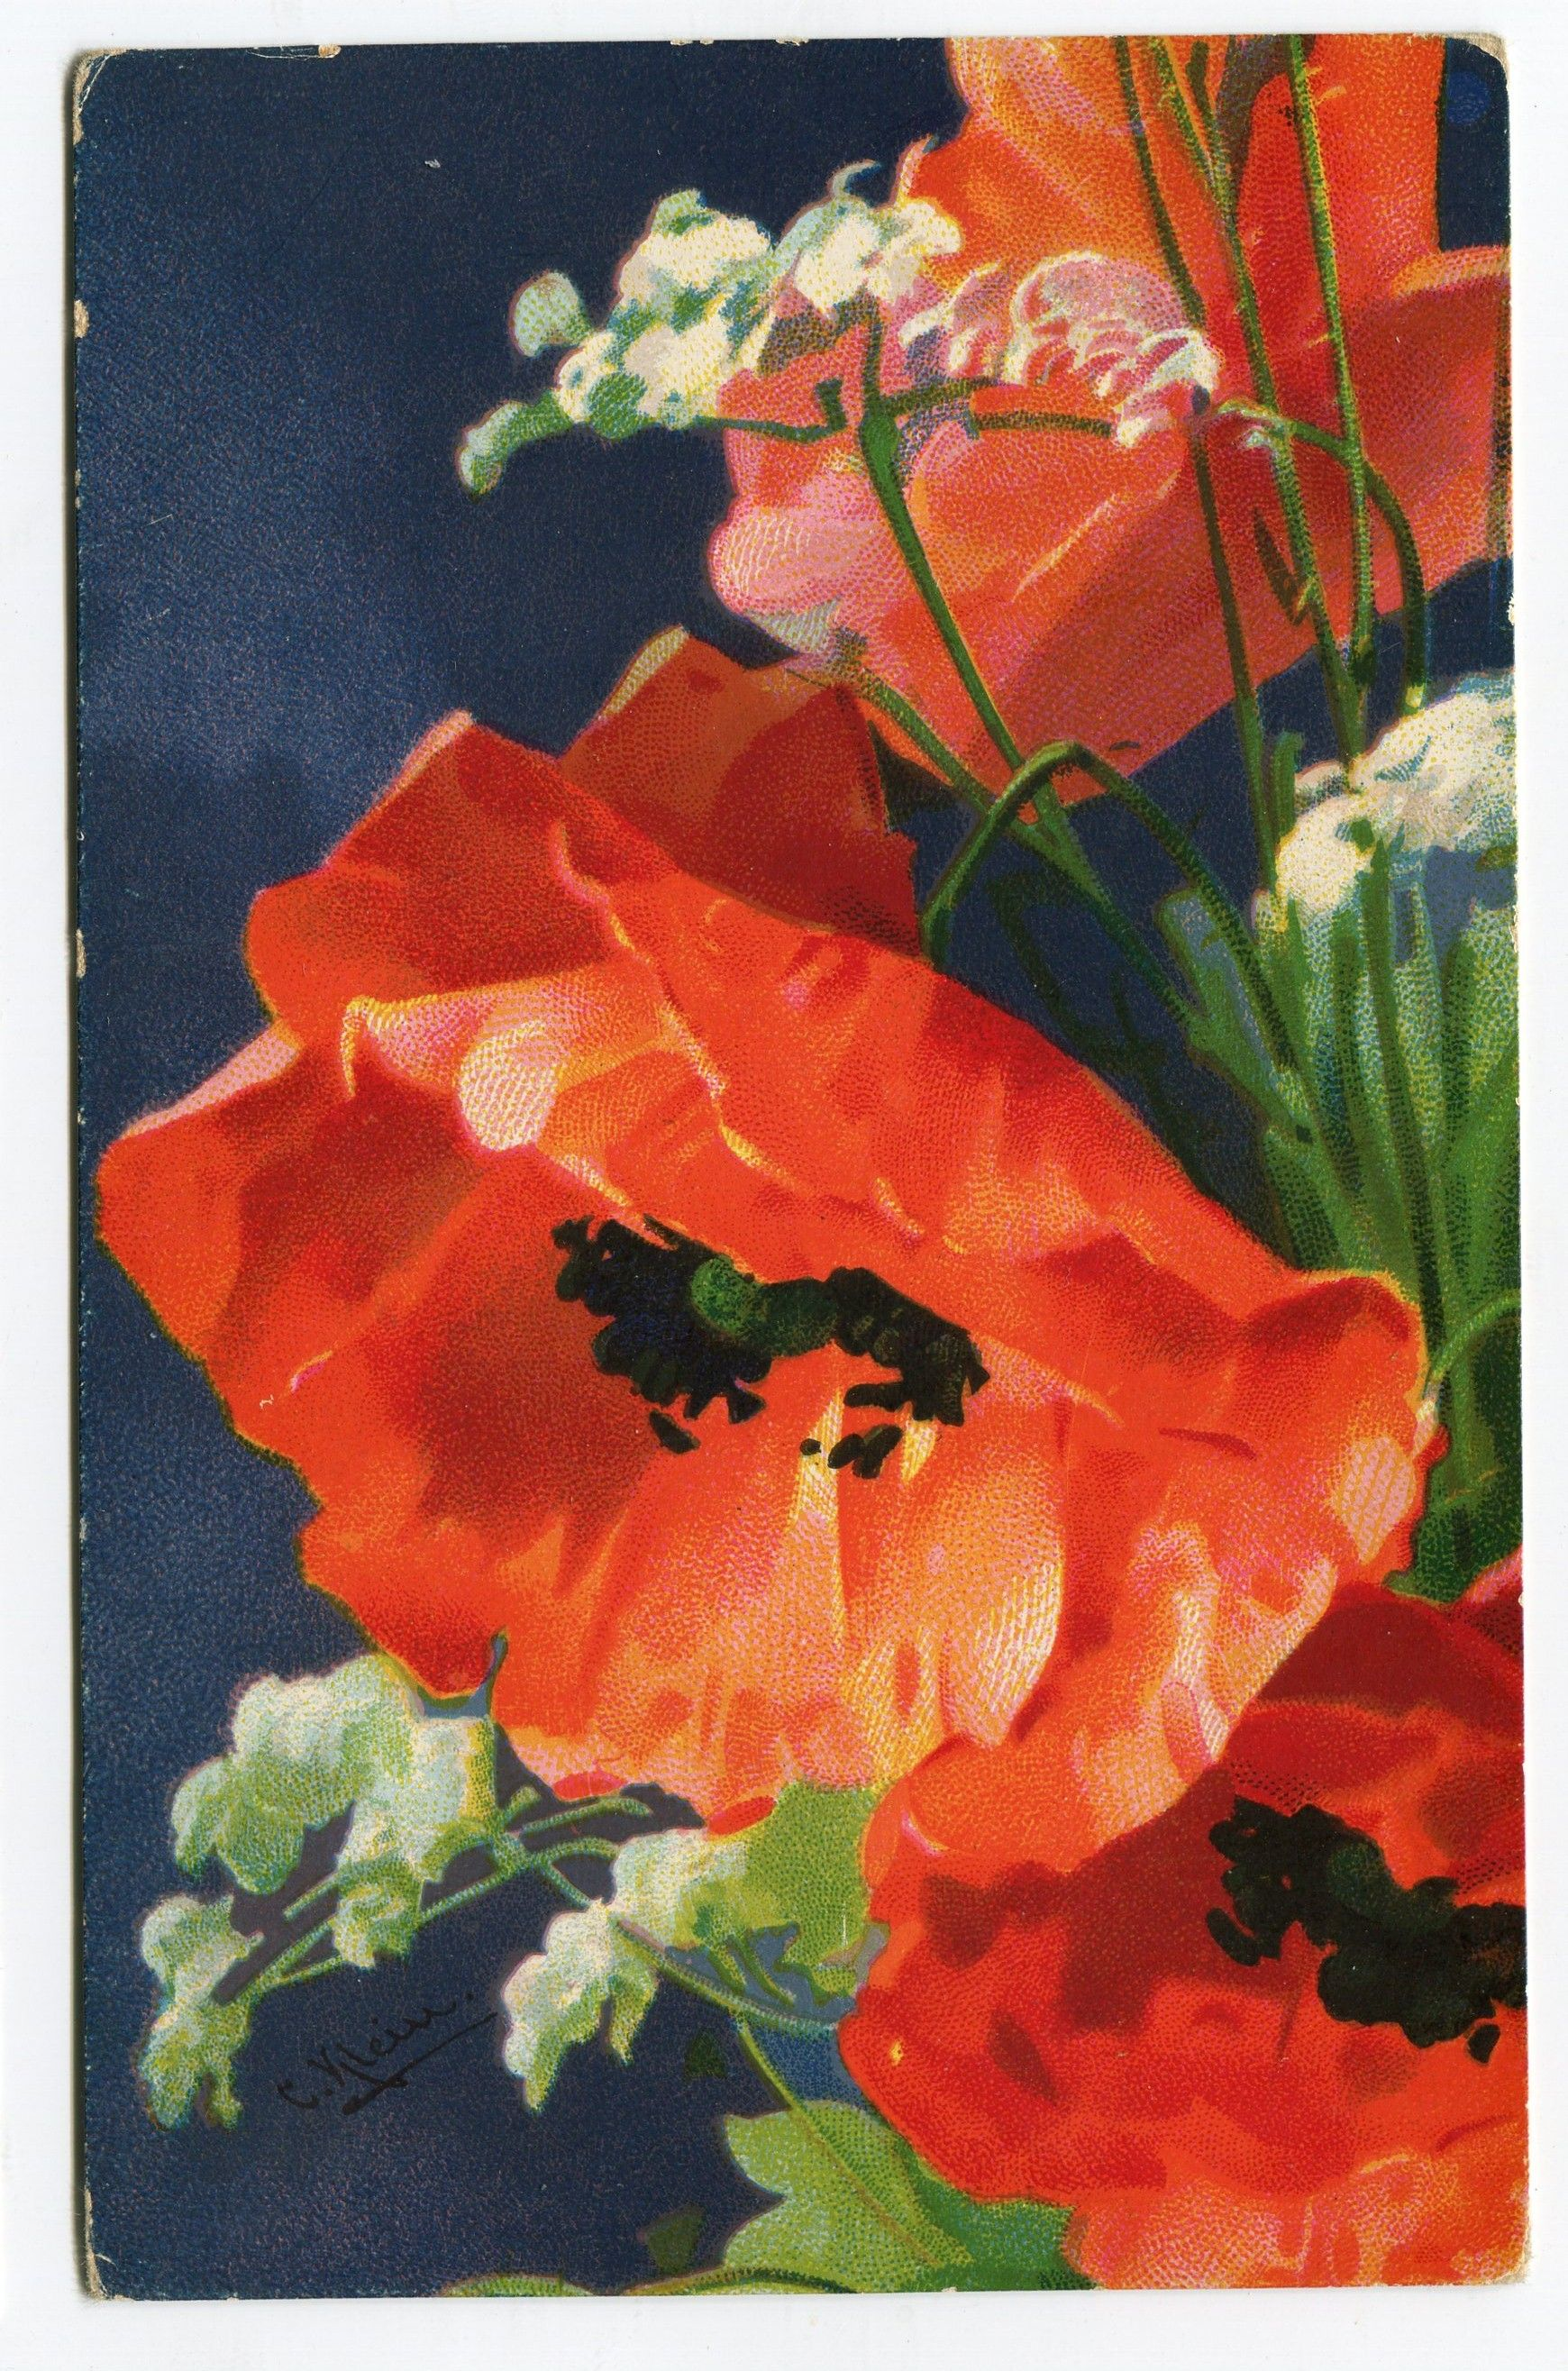 Catharina c klein vintage postcard from germany poppy flowers catharina c klein vintage postcard from germany poppy flowers mightylinksfo